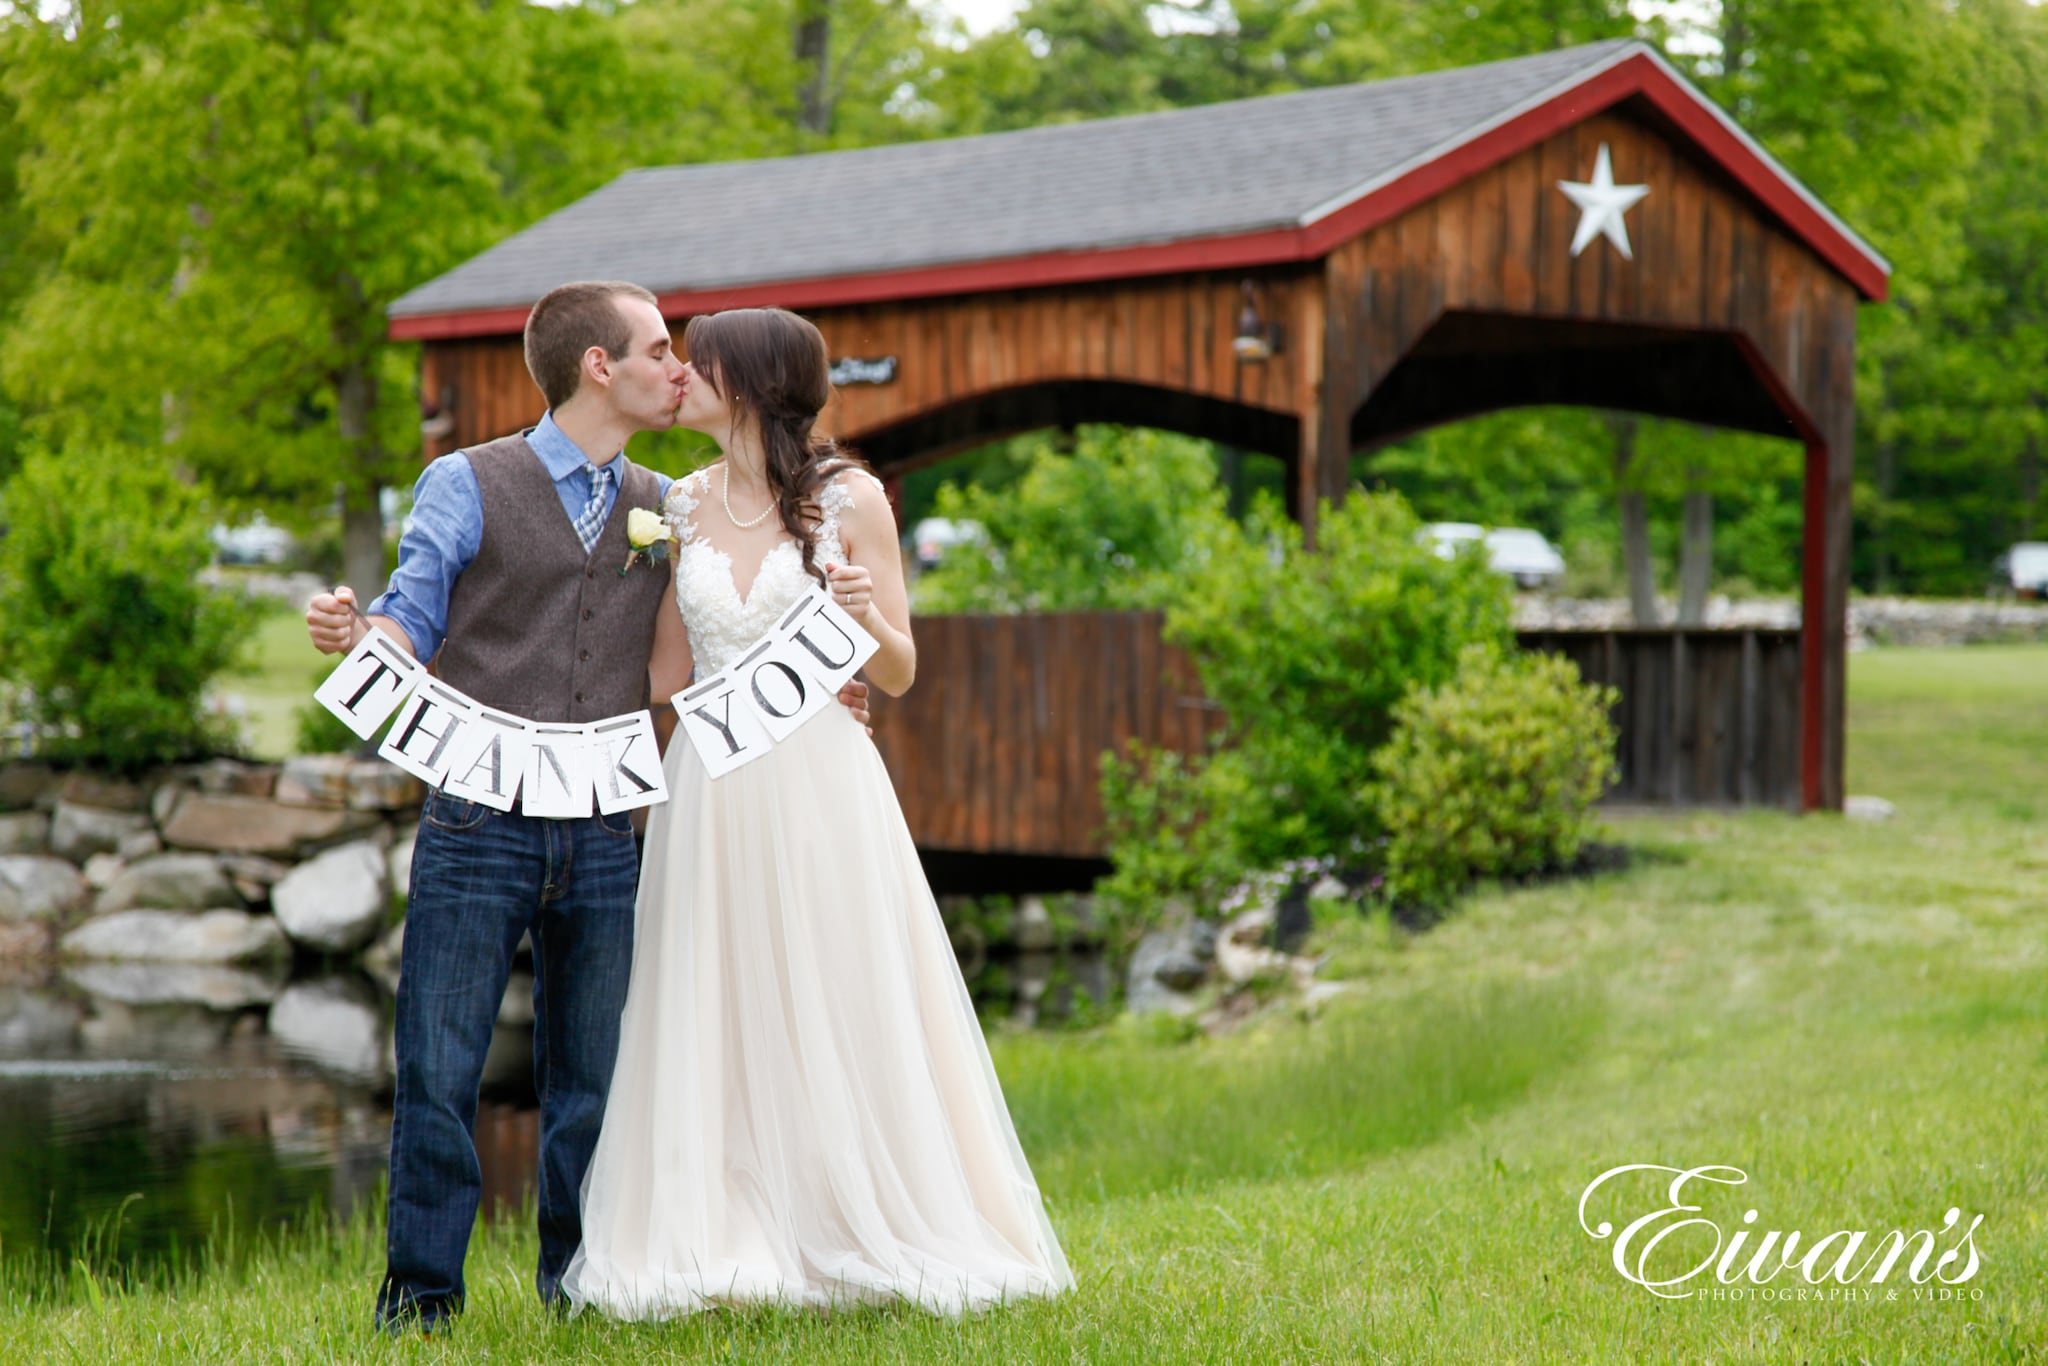 image of a bride and groom kissing while holding up a thank you sign